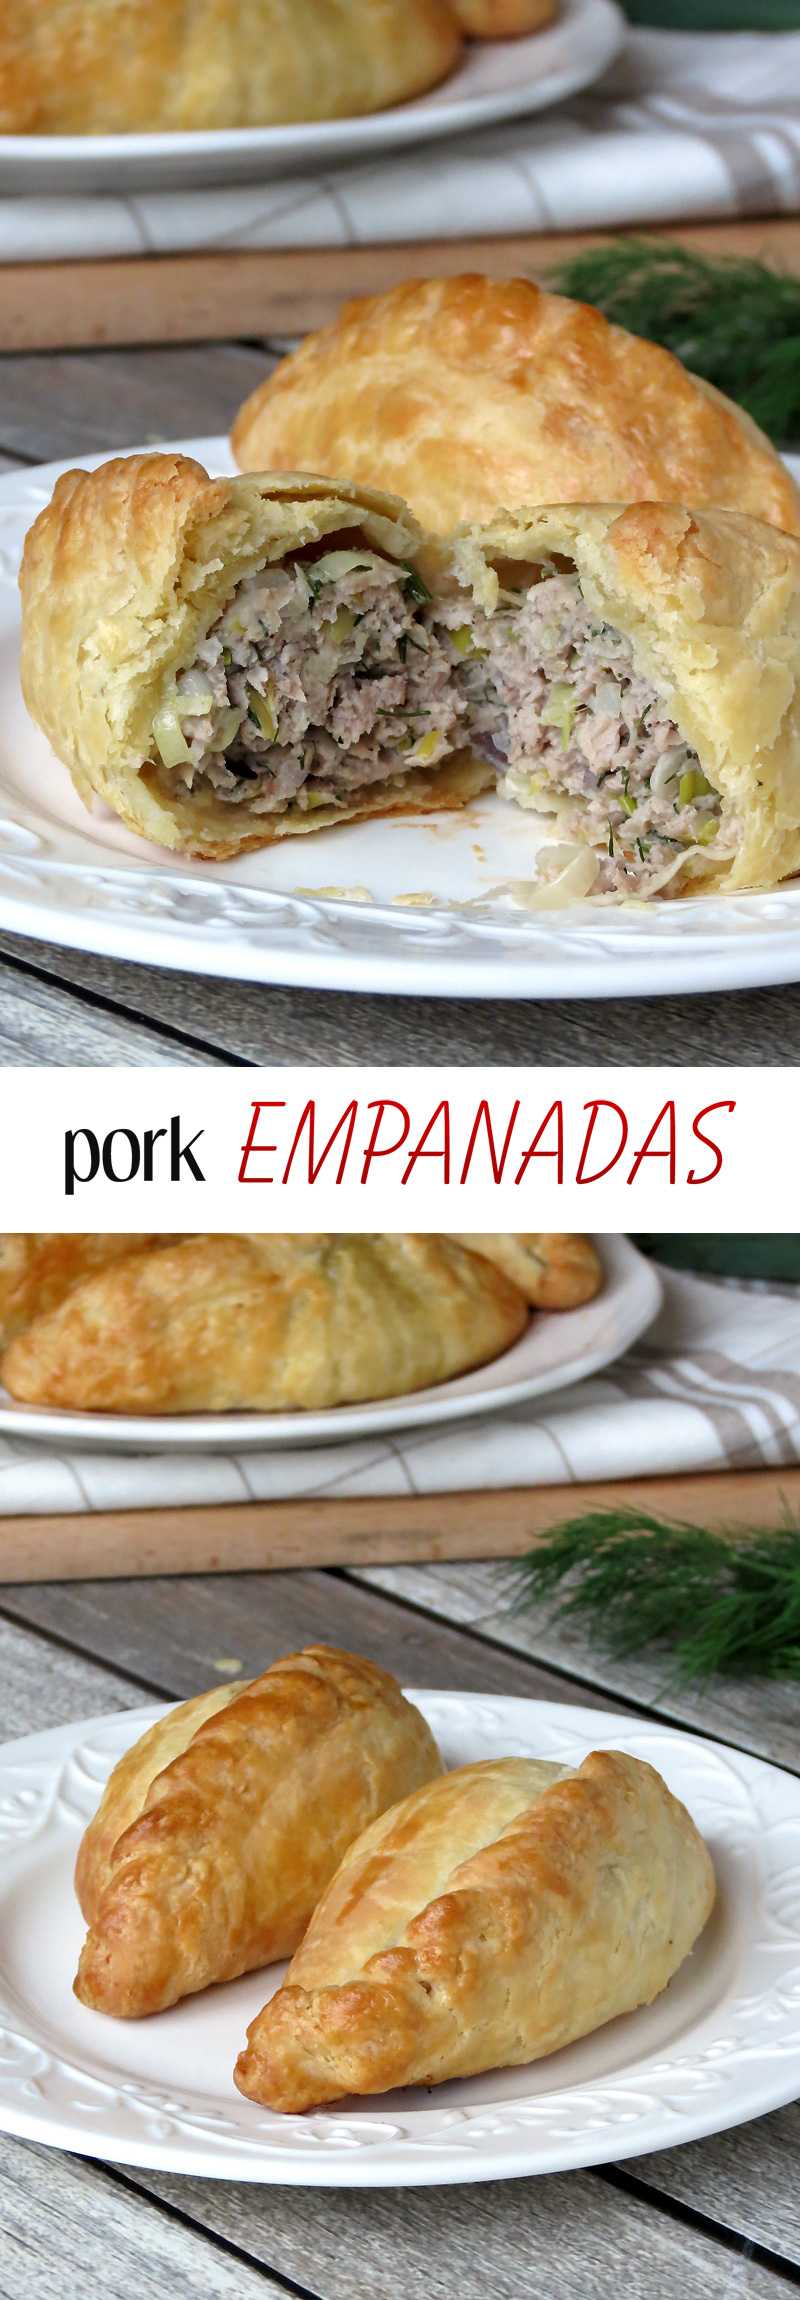 pork empanada A pork butt is slow-cooked to make a savory filling that's tucked inside a  homemade pastry these can be frozen baked or unbaked, and the pork and  empanada.